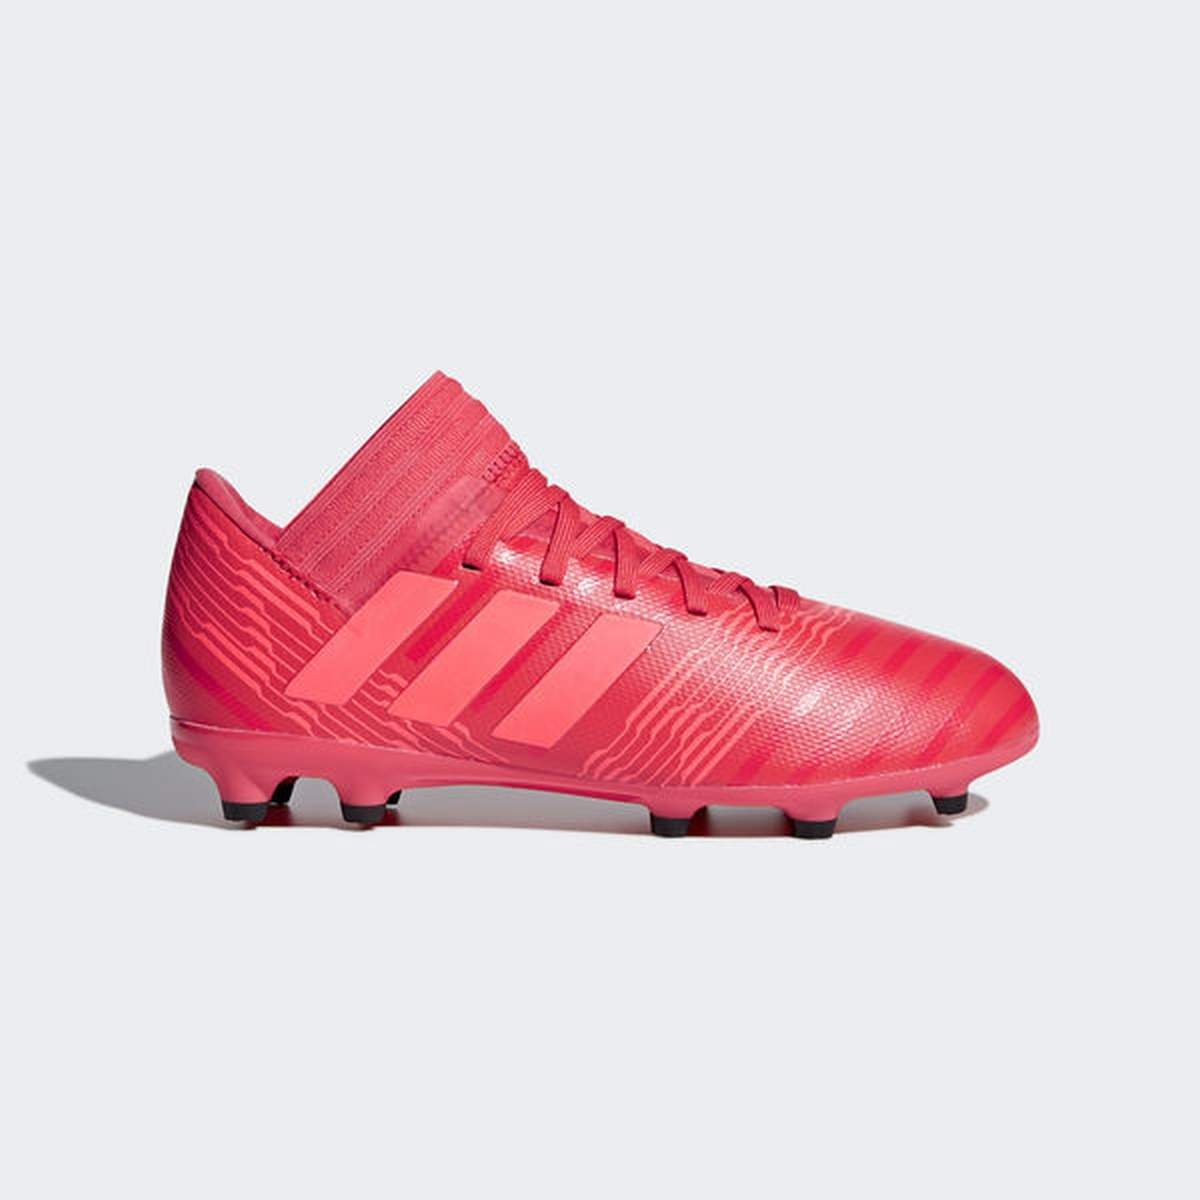 newest 12ec1 47cd2 Adidas Nemeziz 17.3 Fg Junior